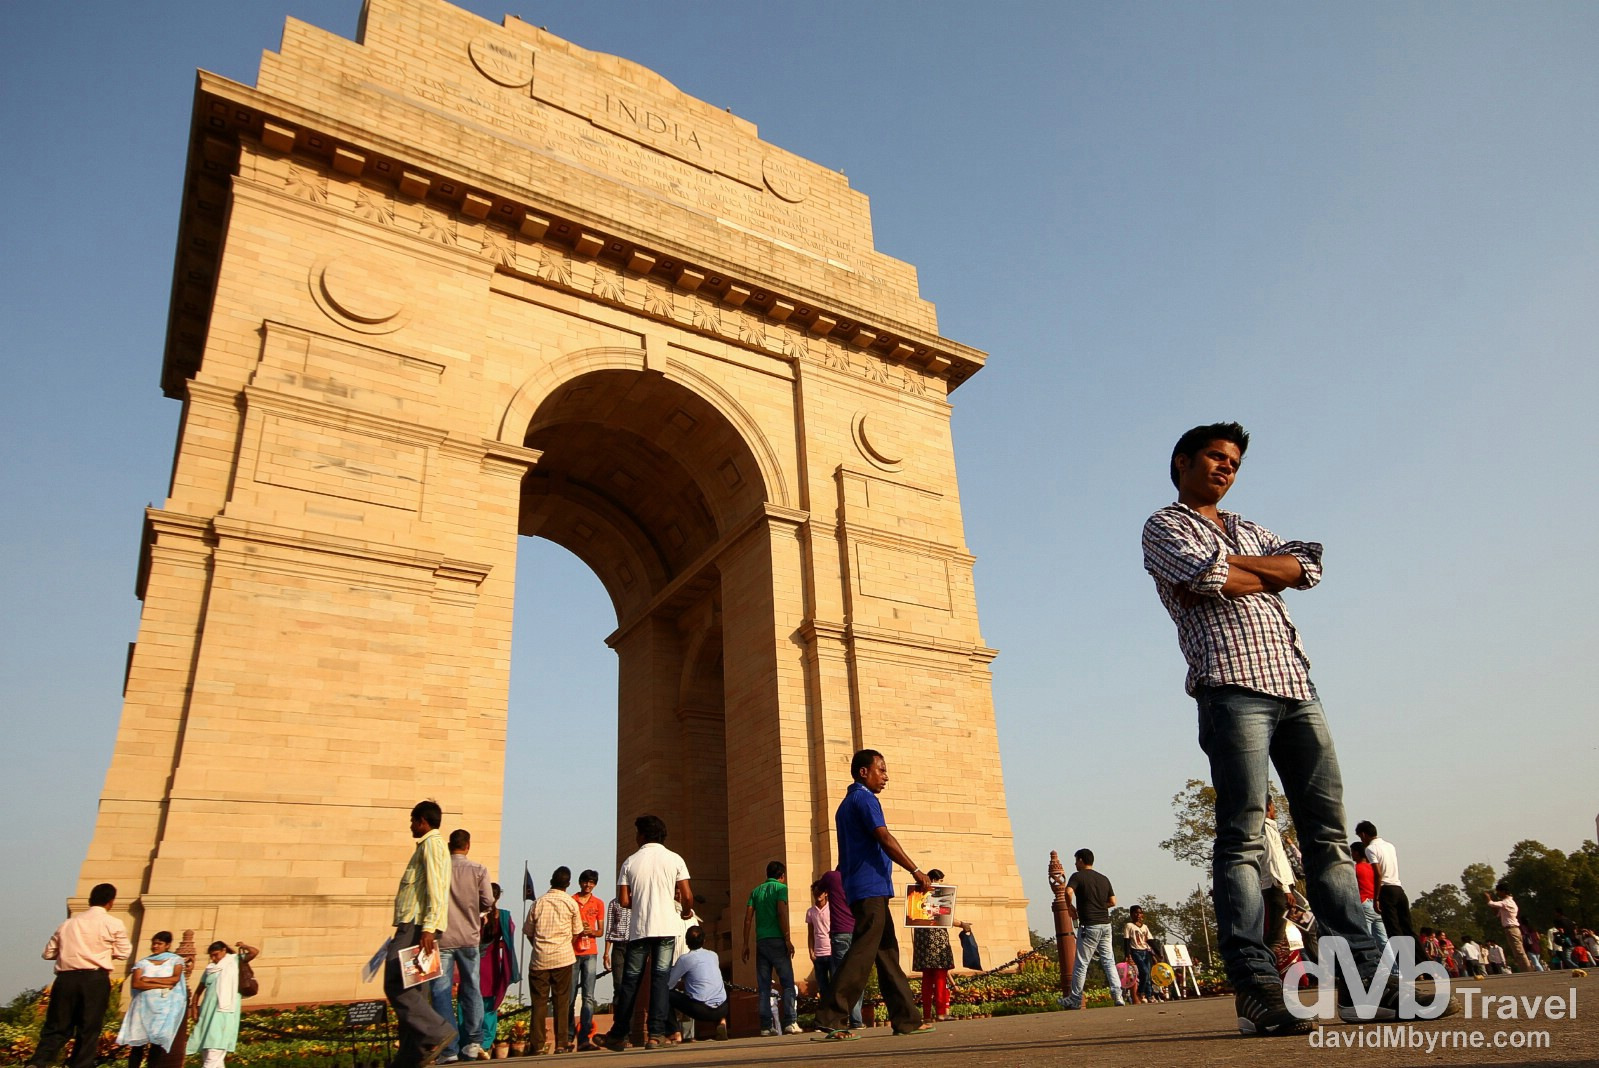 Posing at the India Gate, New Delhi, India. October 7th 2012.